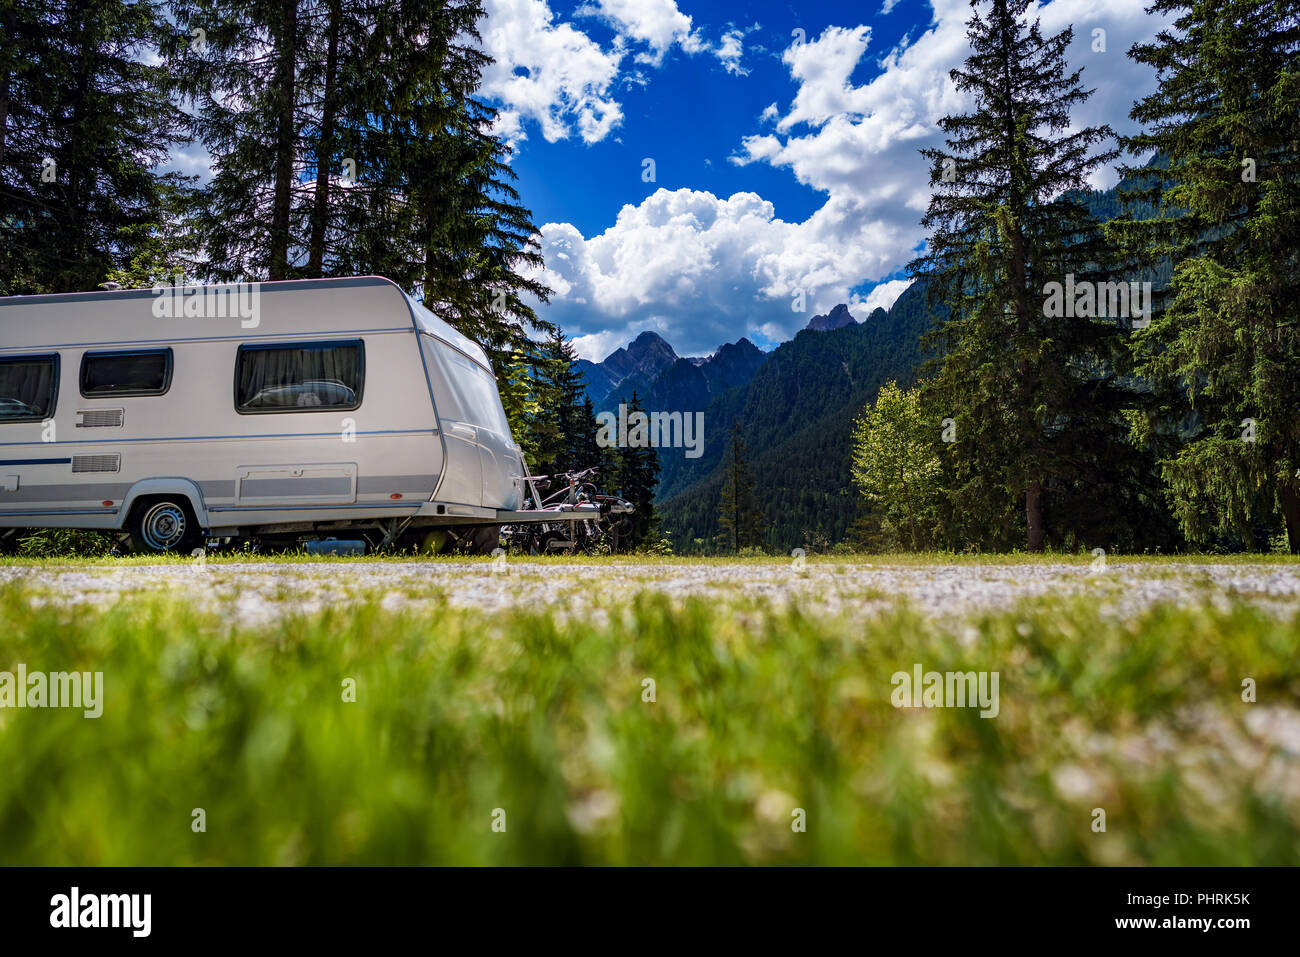 Family vacation travel, holiday trip in motorhome RV, Caravan car Vacation. Beautiful Nature Italy natural landscape Alps. - Stock Image